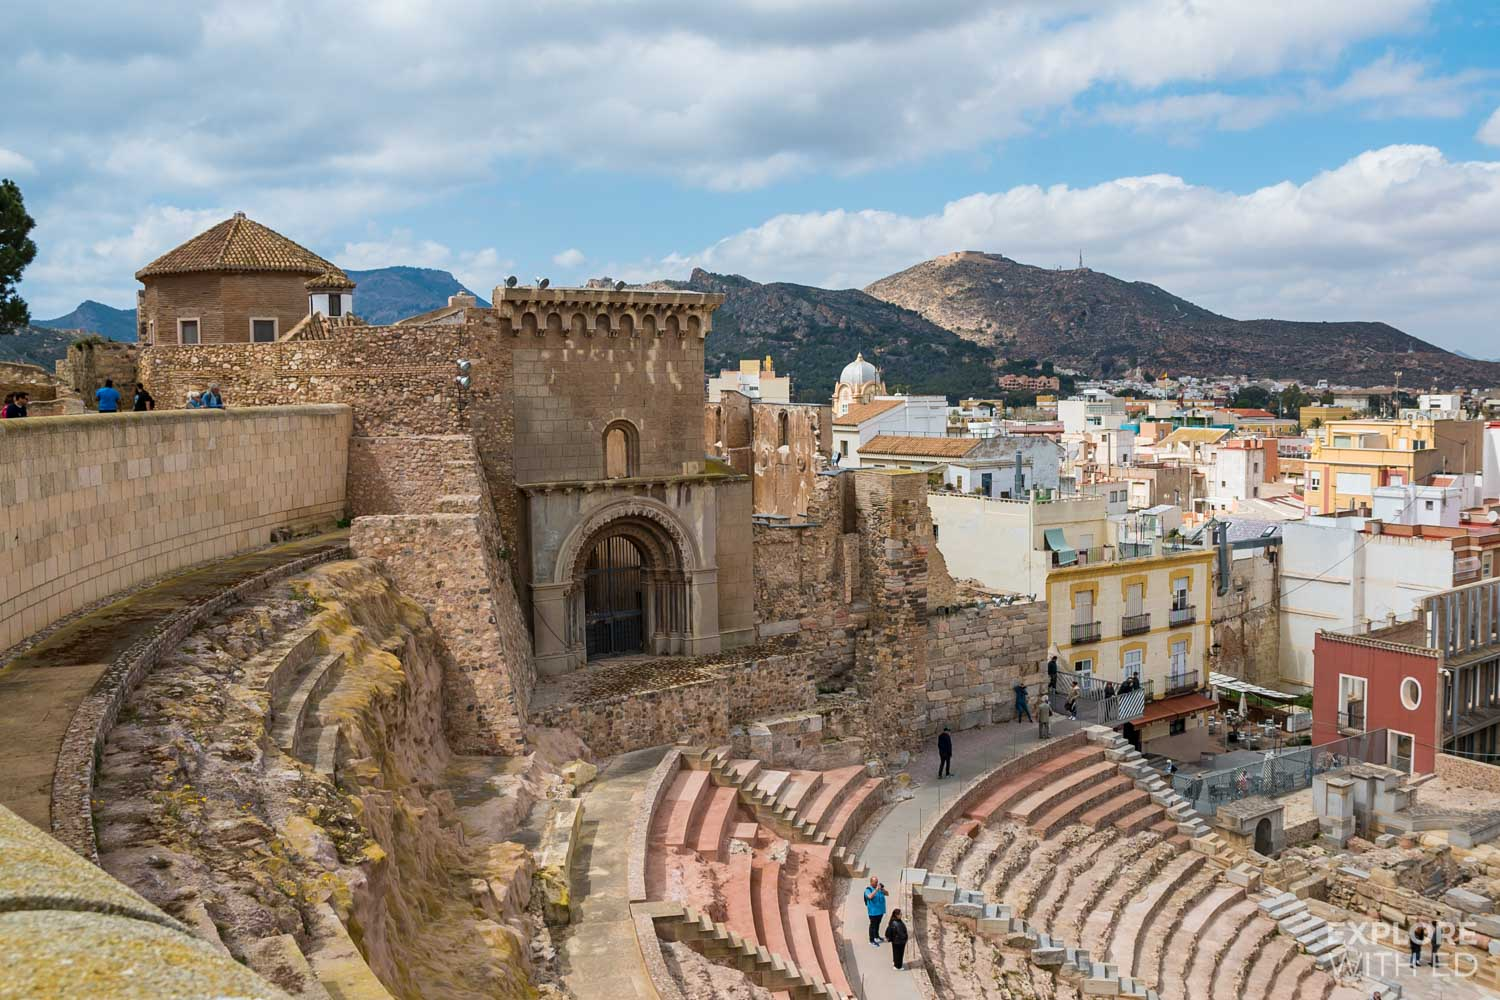 Roman ruins in Cartagena, Spain